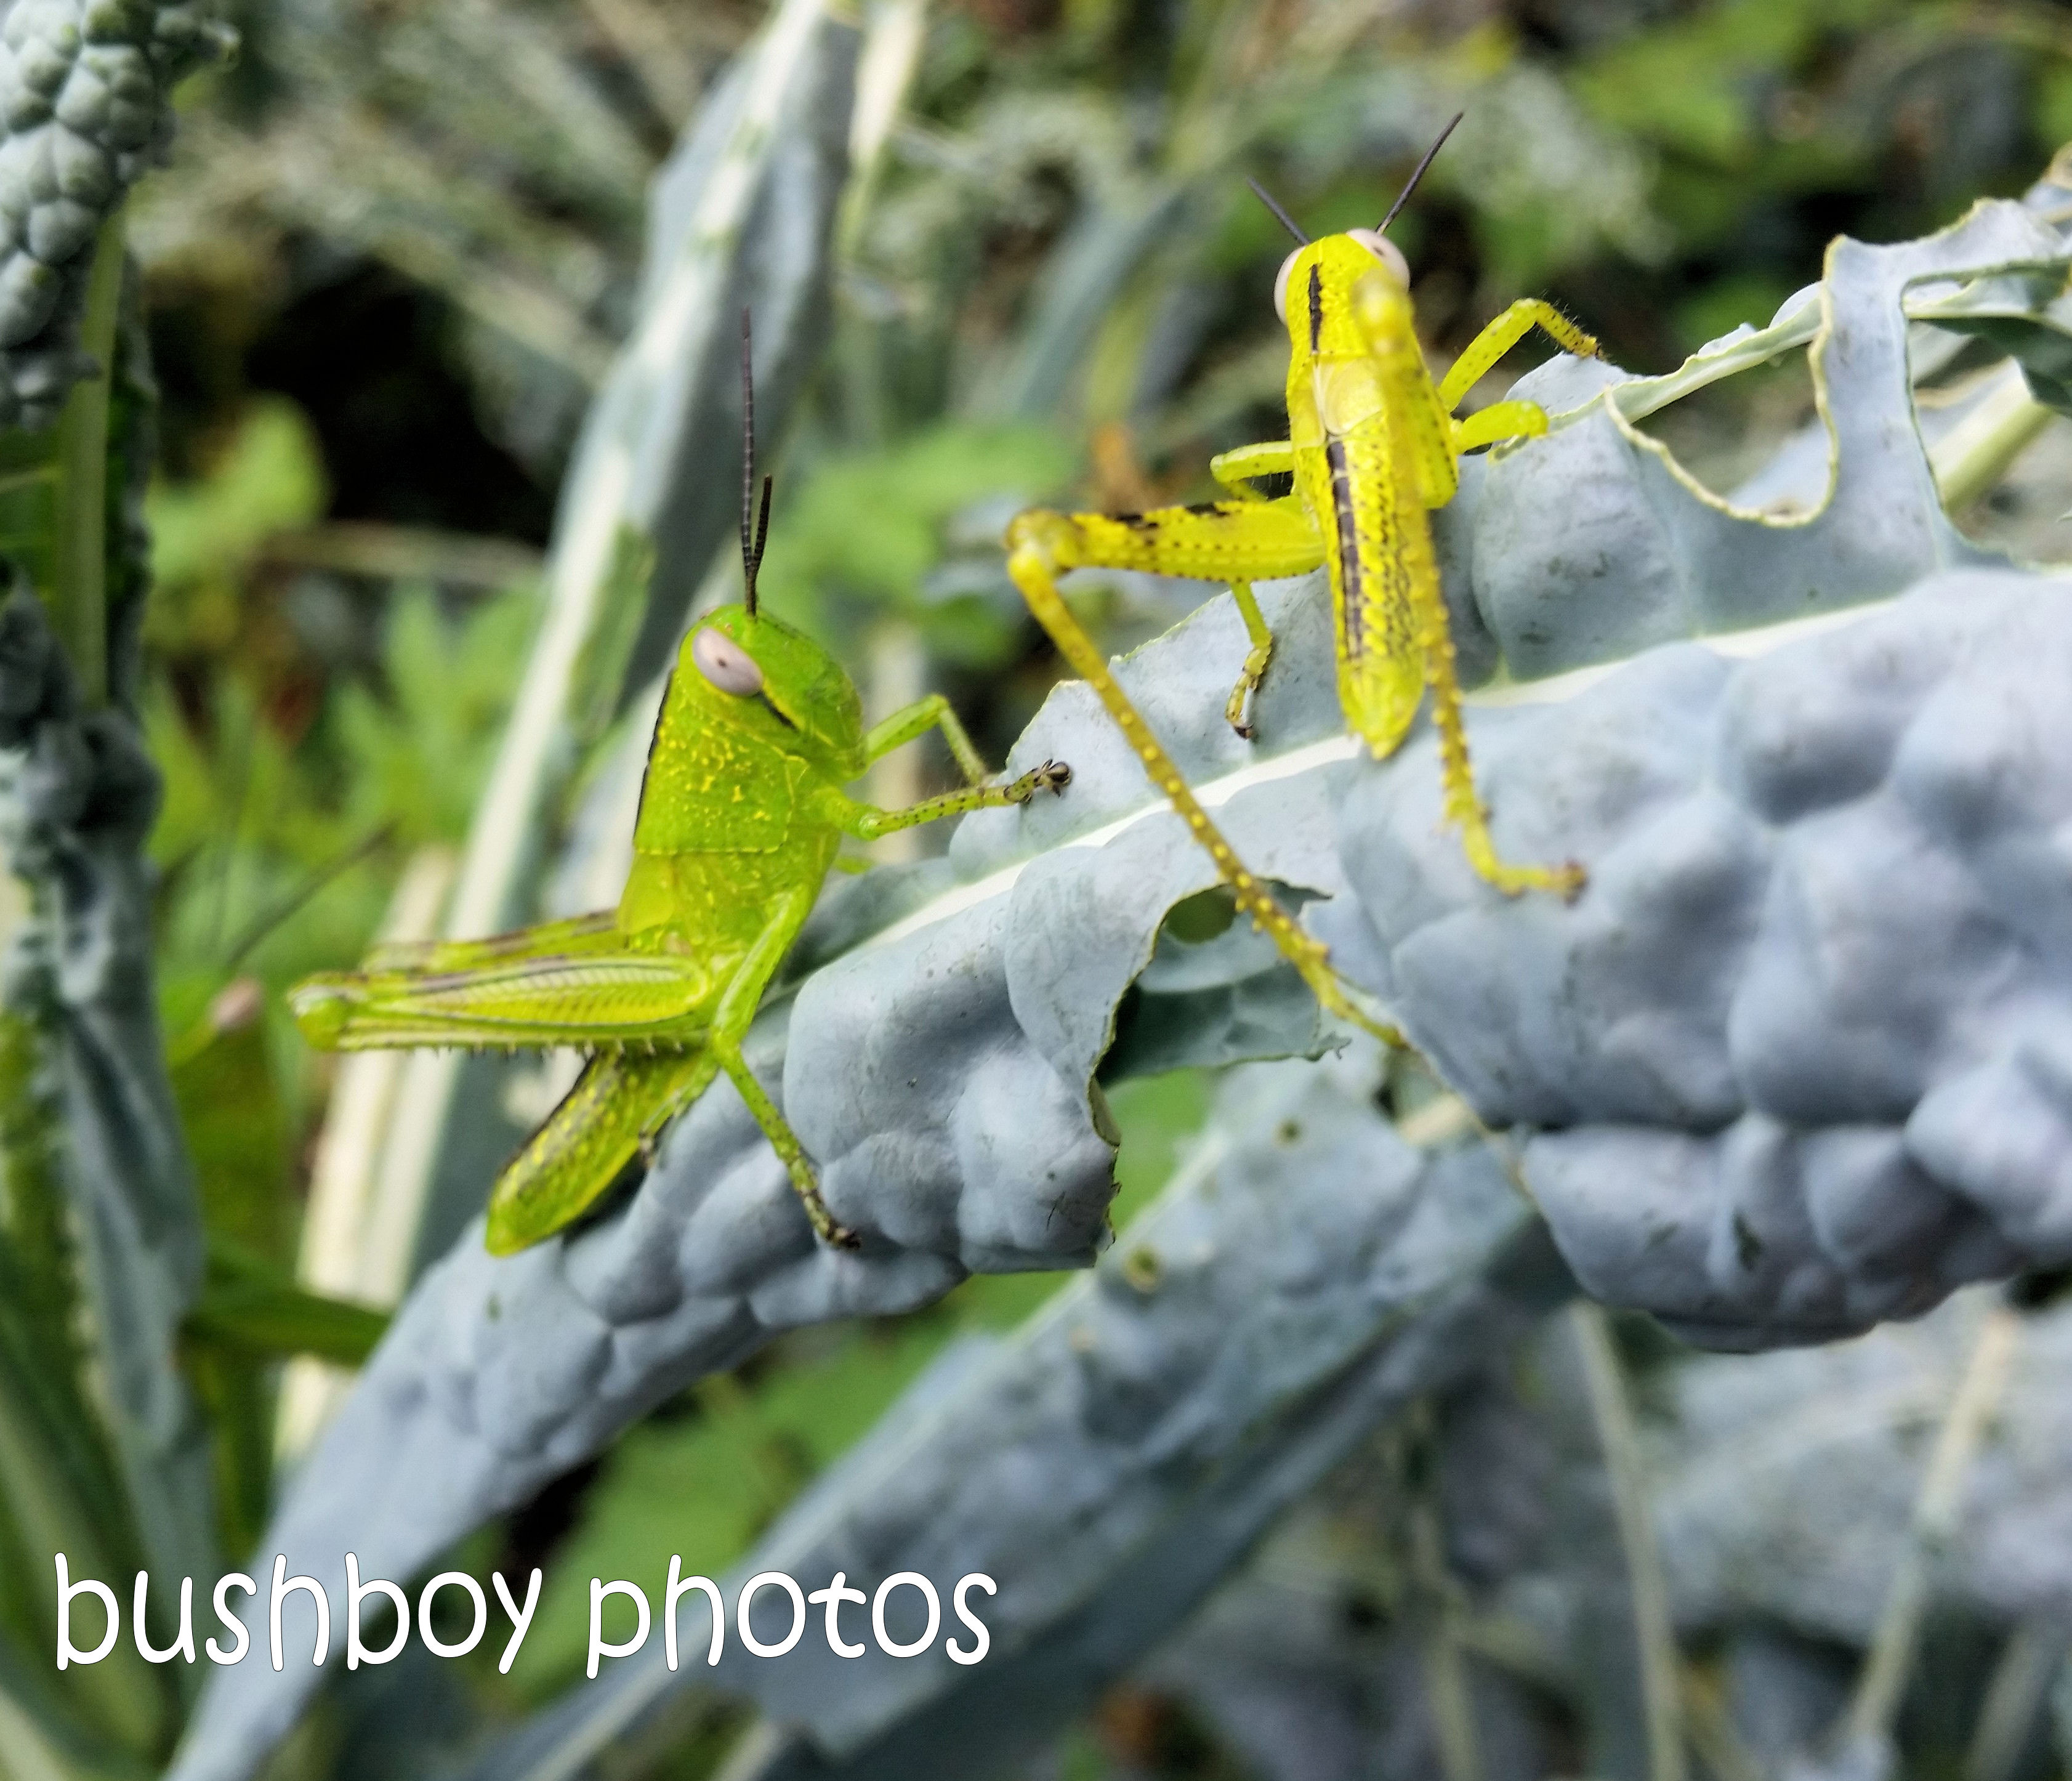 180920_blog challenge_starts with g_grasshoppers